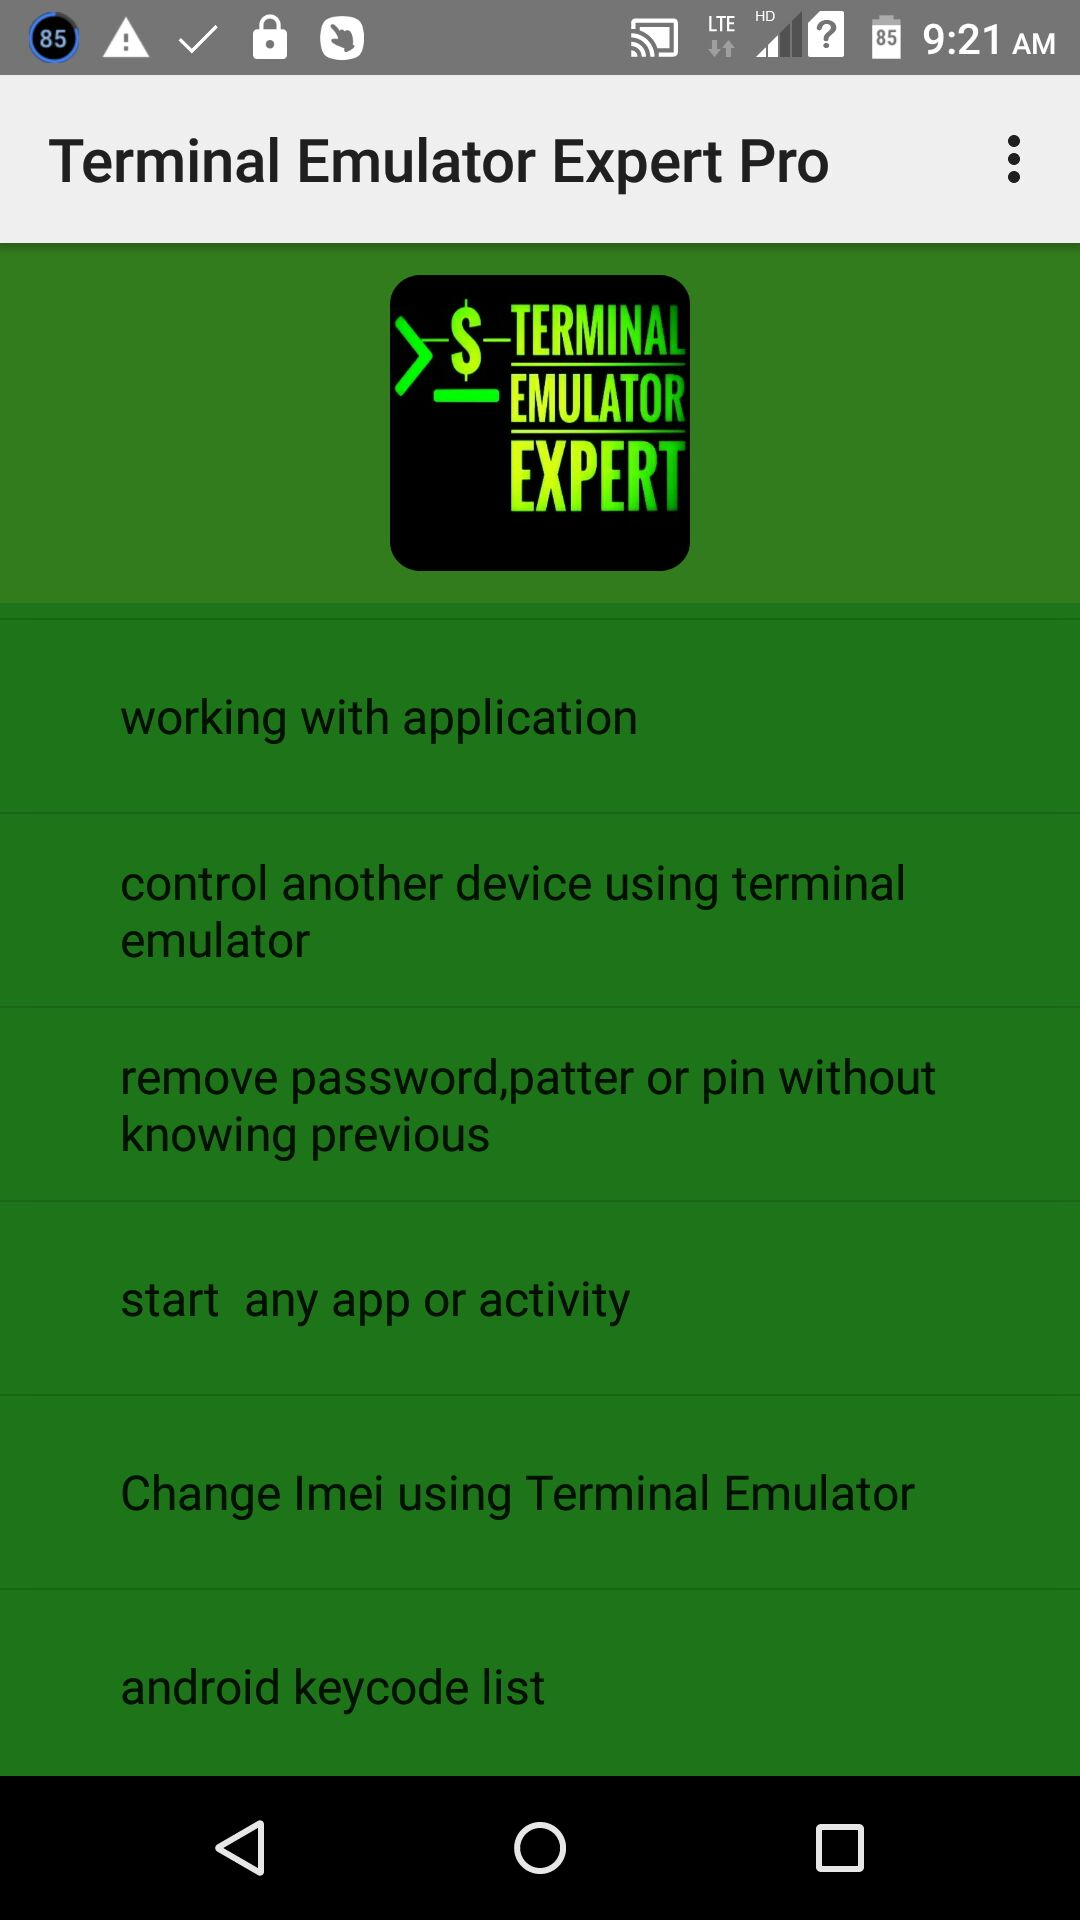 Amazon com: terminal emulator expert pro: Appstore for Android